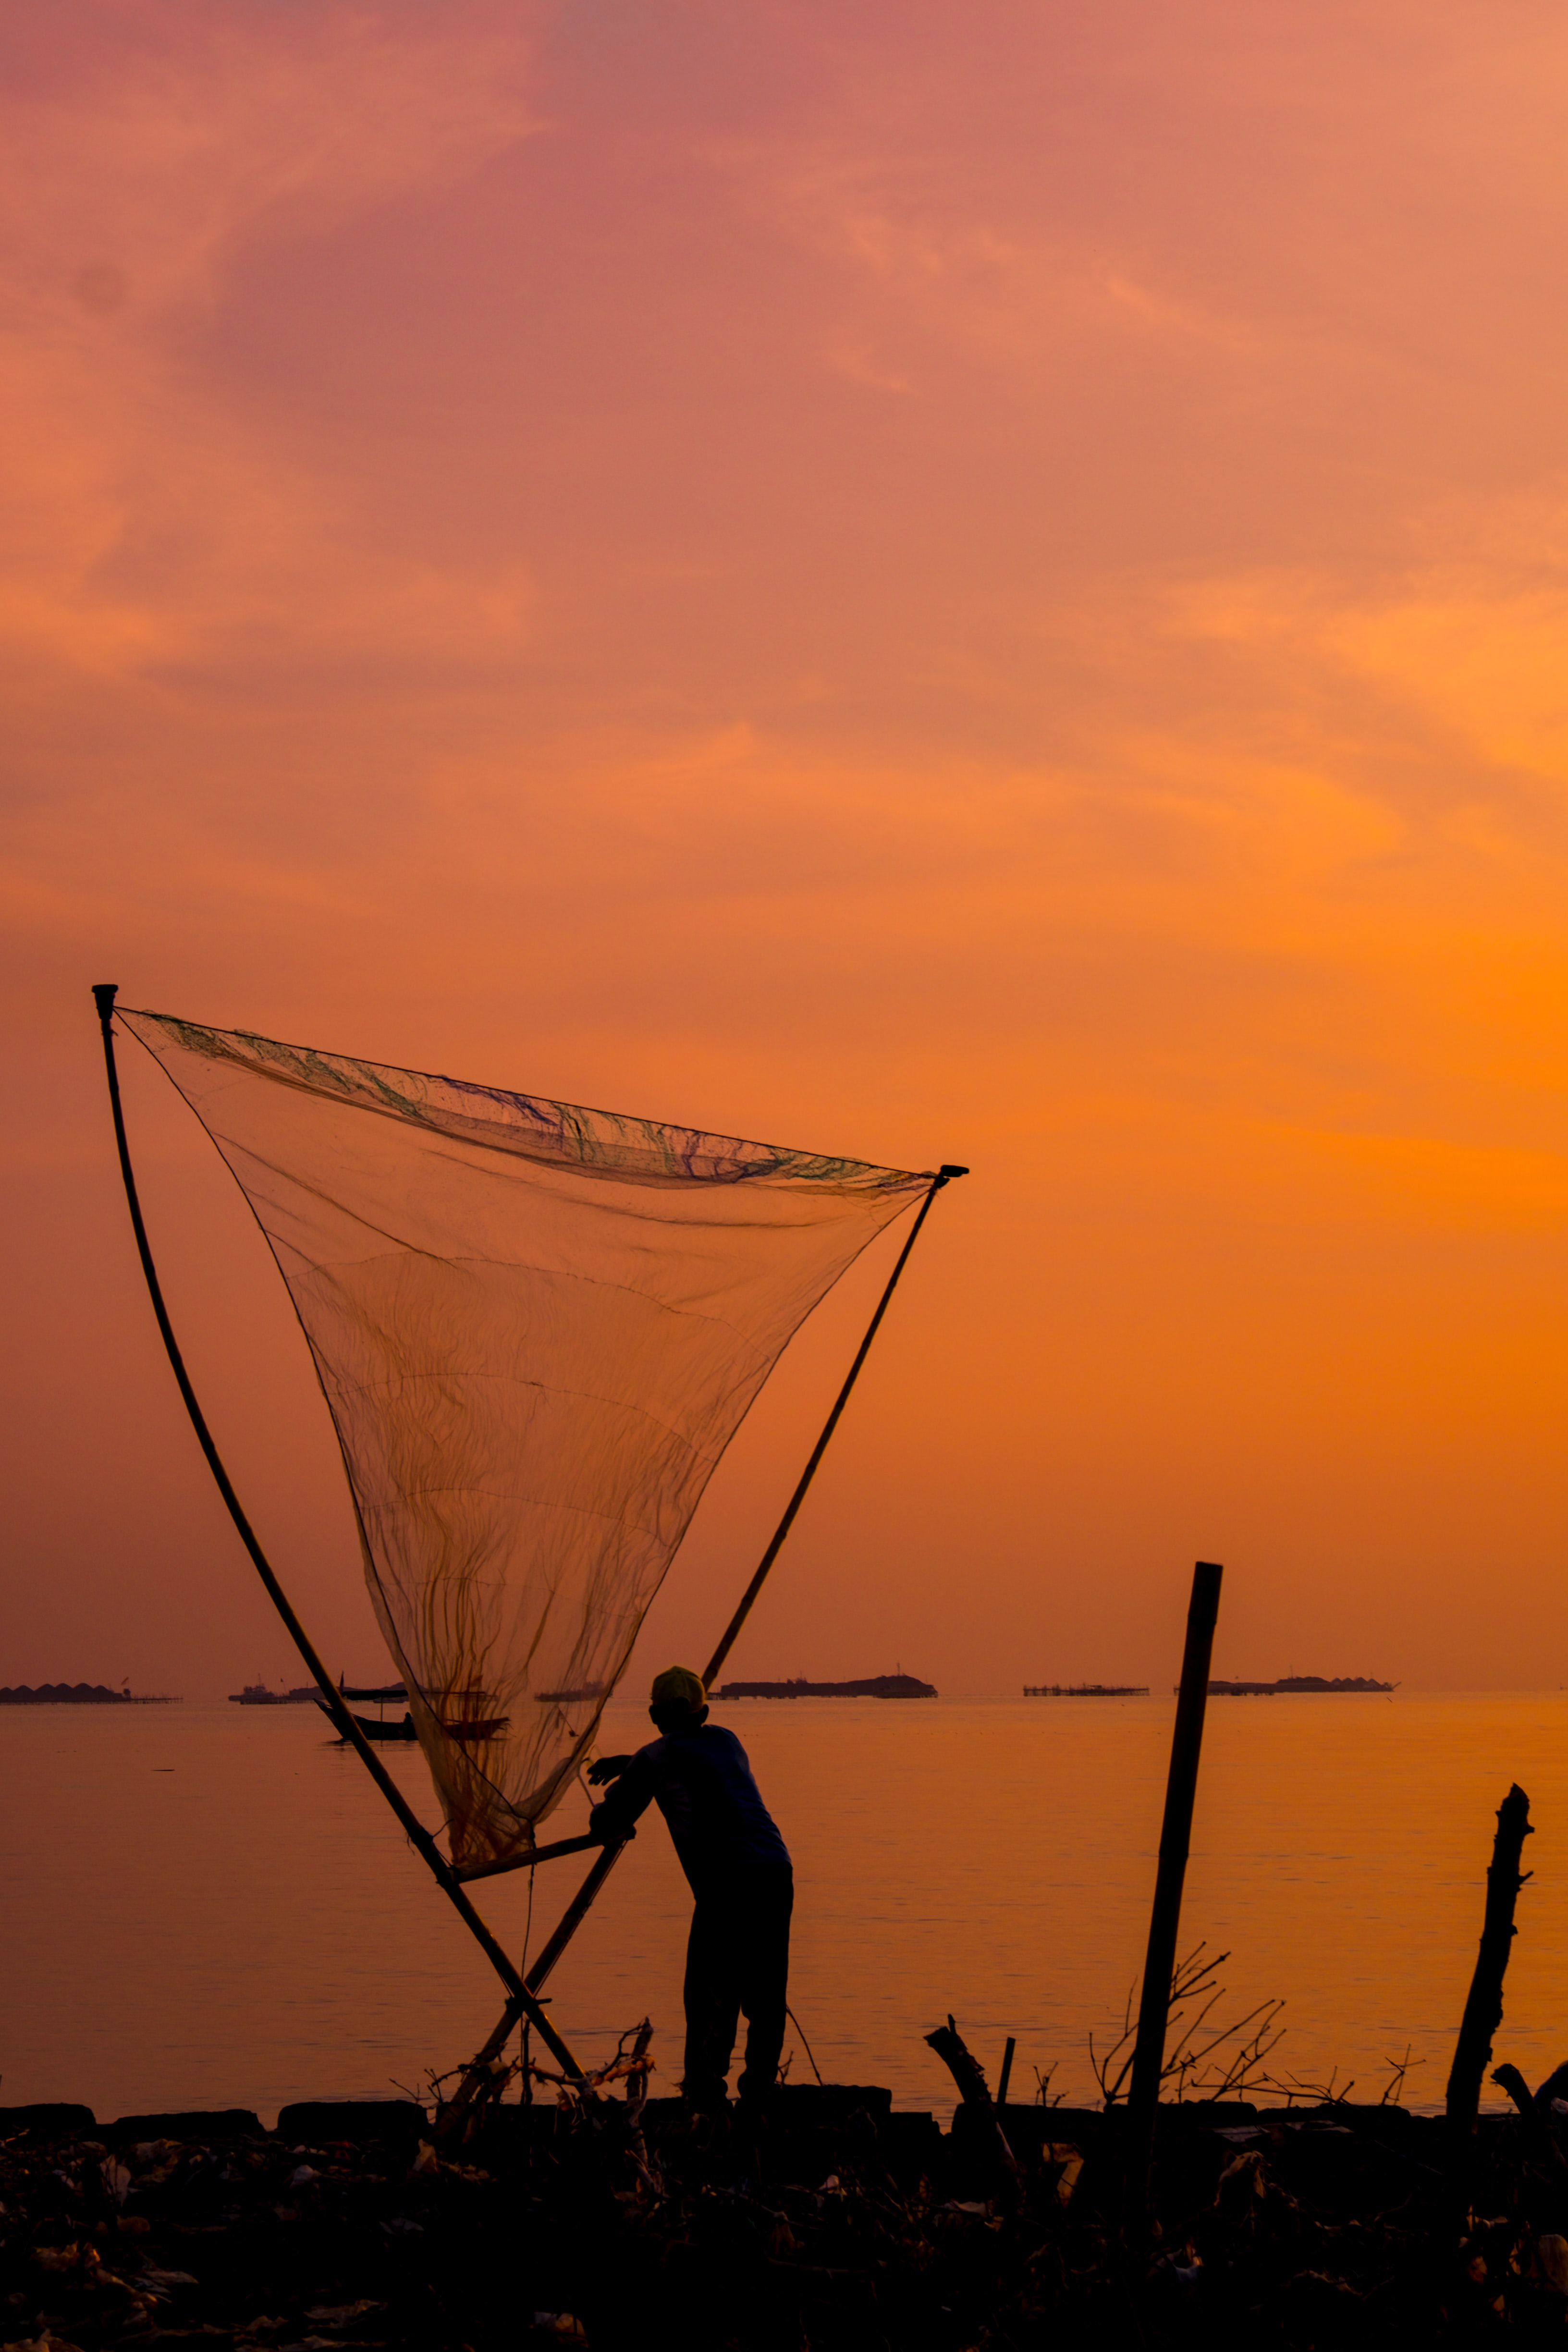 silhouette of man holding net